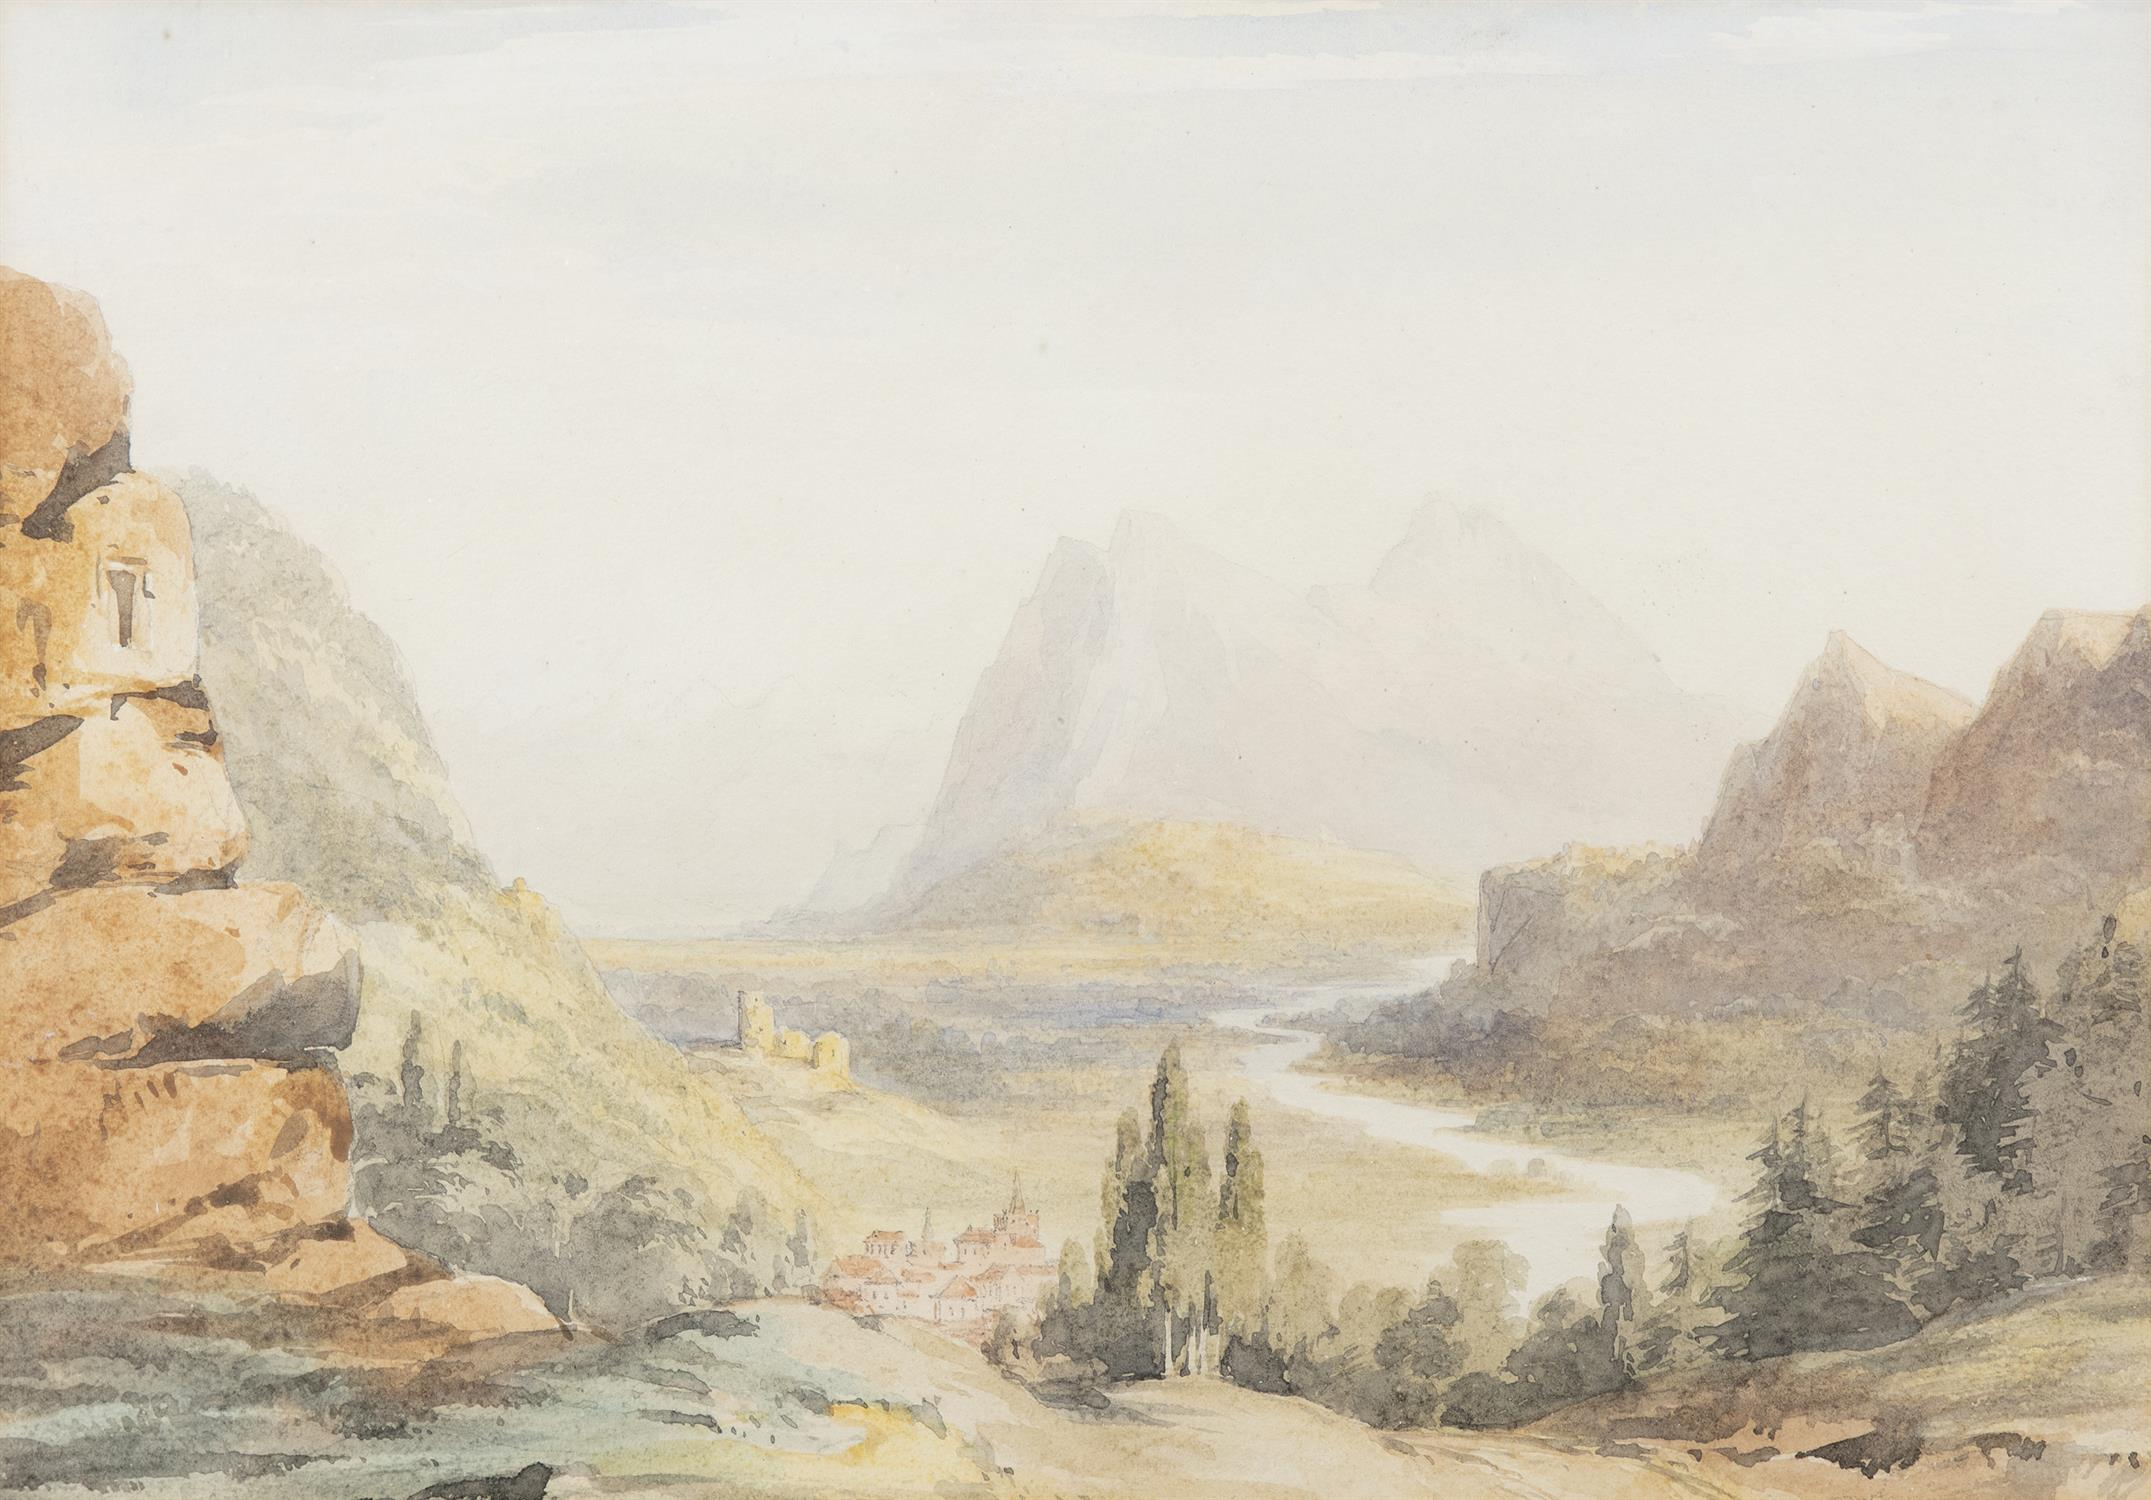 Frederick Marquis of Londonderry 'View Near Achnacarry' and 'View Near Ragatz' Three watercolours, - Image 4 of 8